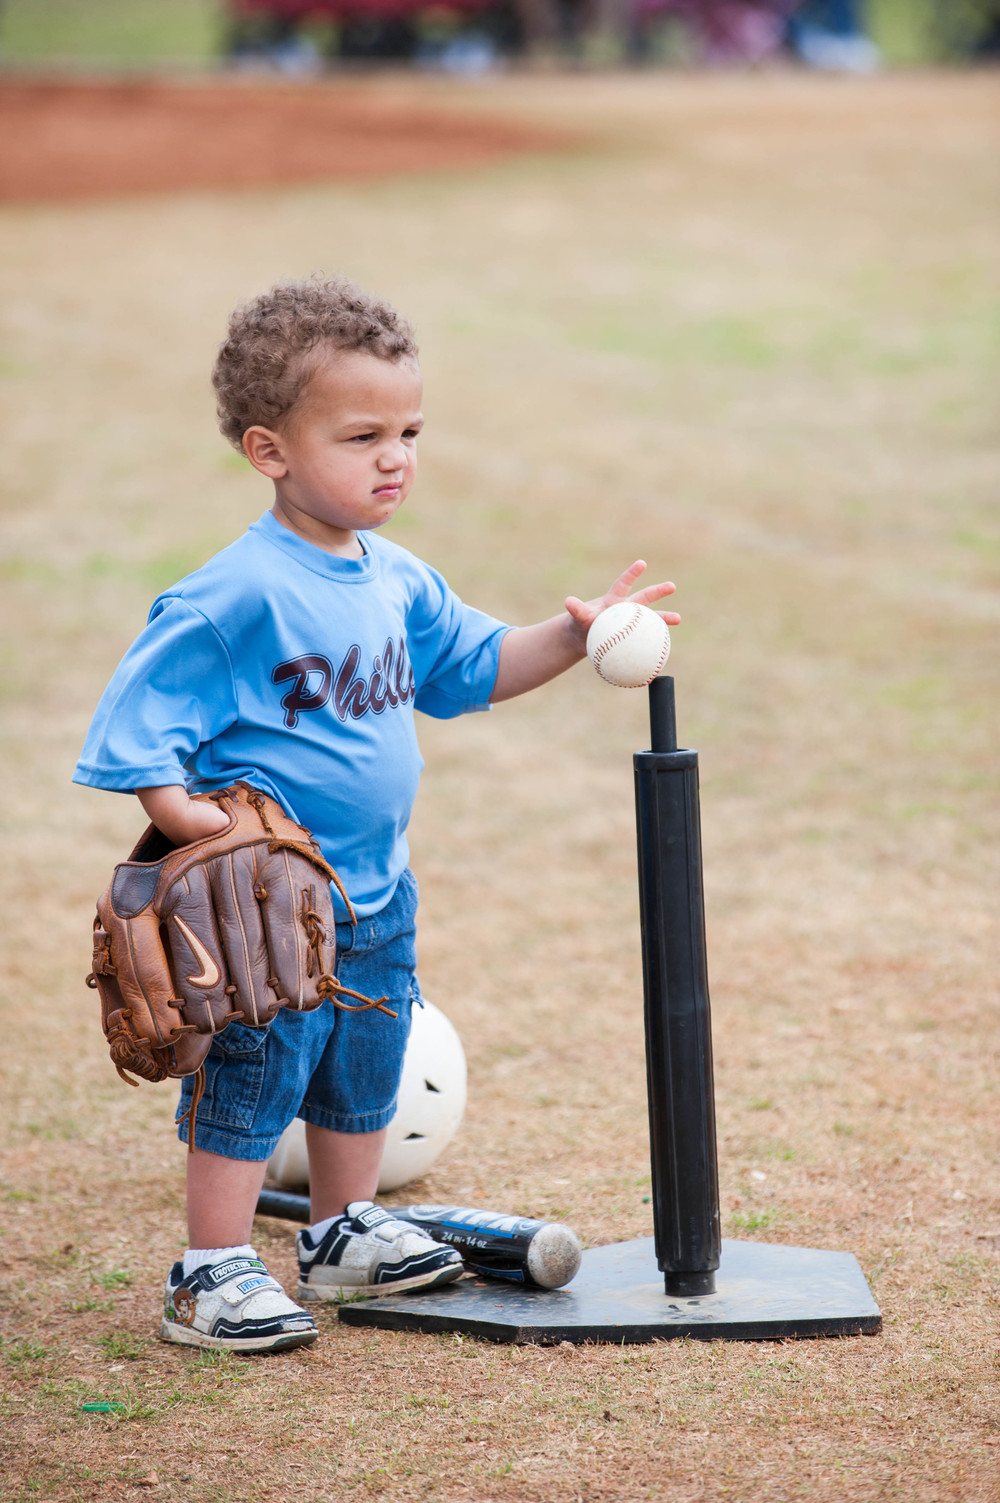 WRALL Warner Robins Little League | Sports Photography 13